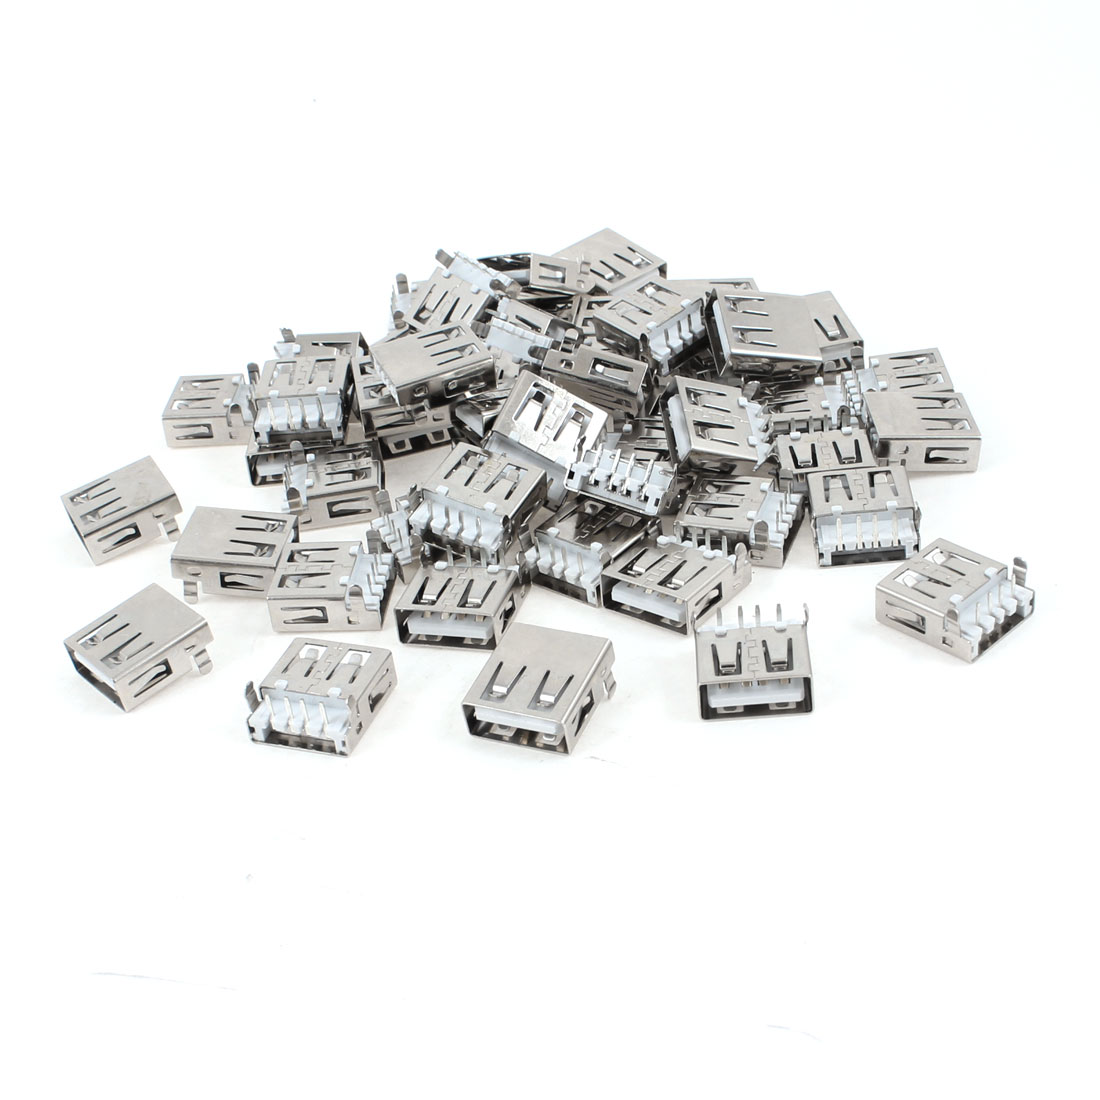 50 Pcs USB 2.0 Type A Right Angle 4-Pin DIP Female Jack Connector